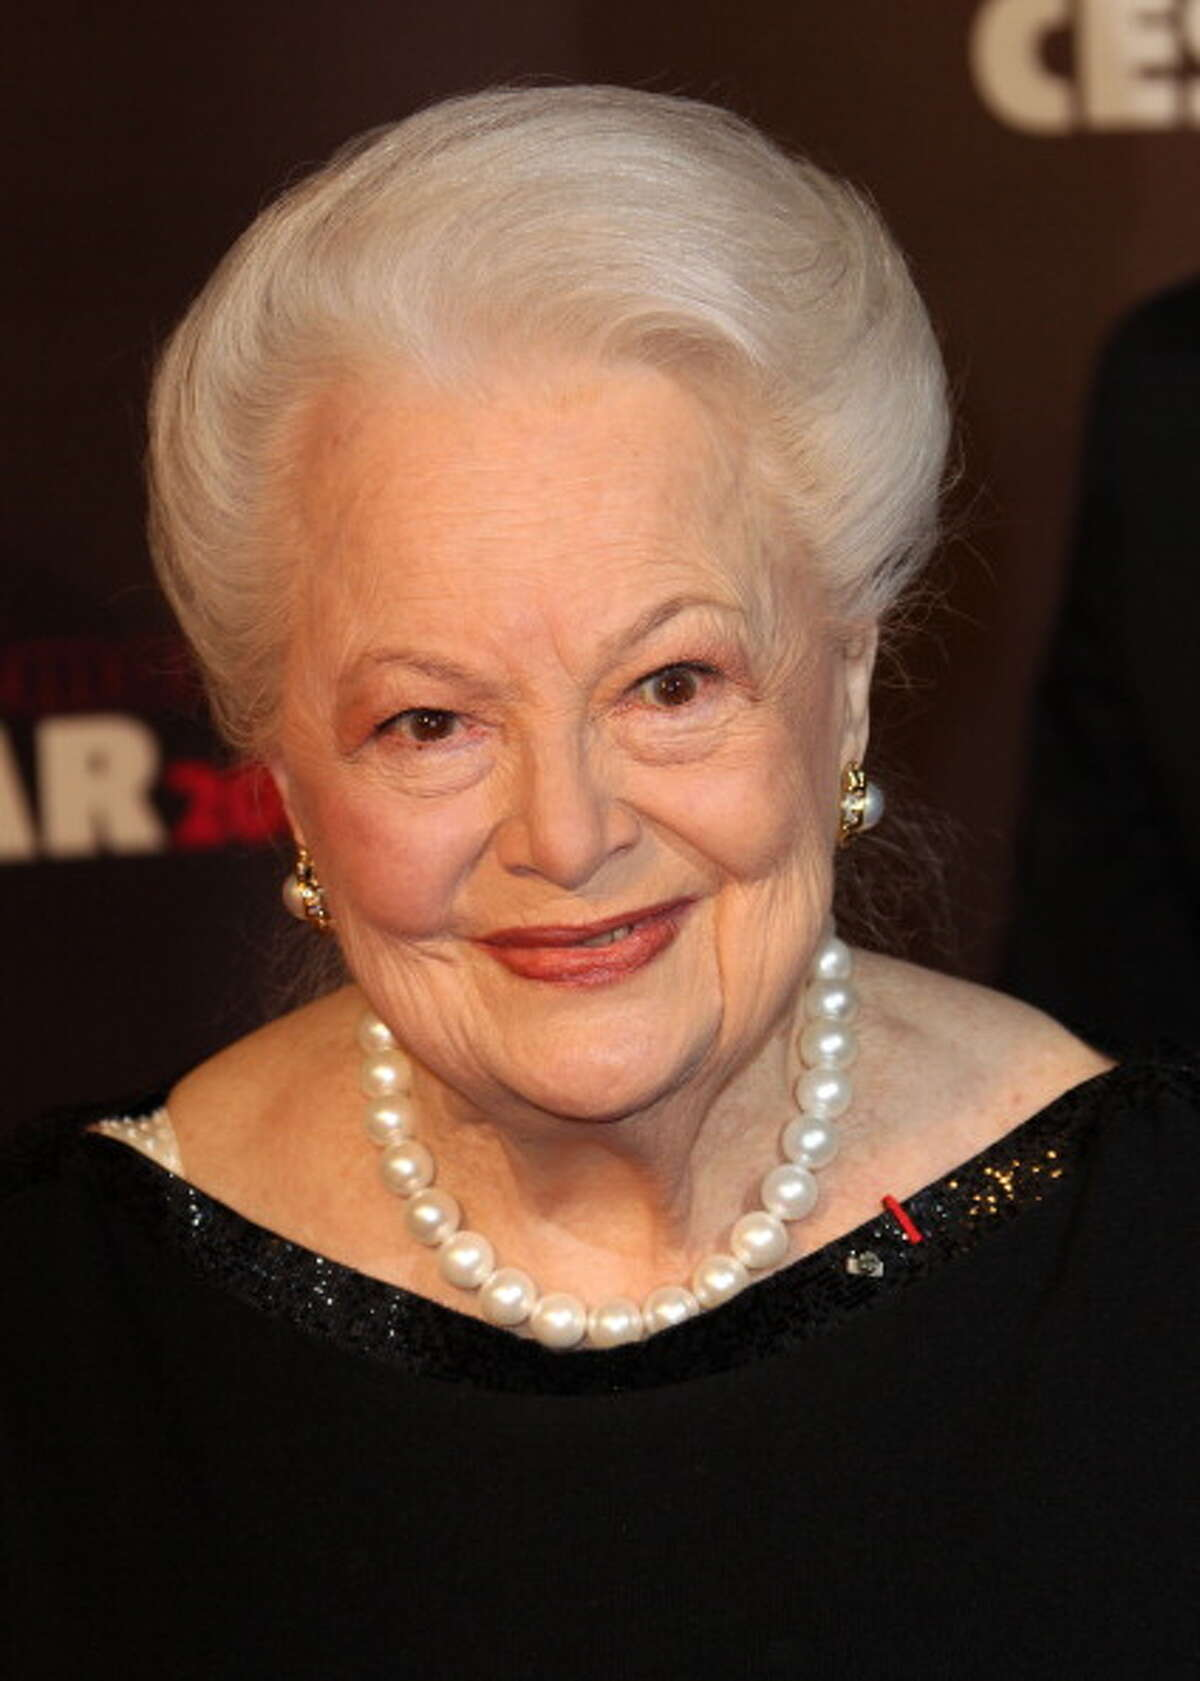 Olivia de Havilland, 2011 She hasn't acted since the late 1980s, but still narrates documentaries as recently as 2011.